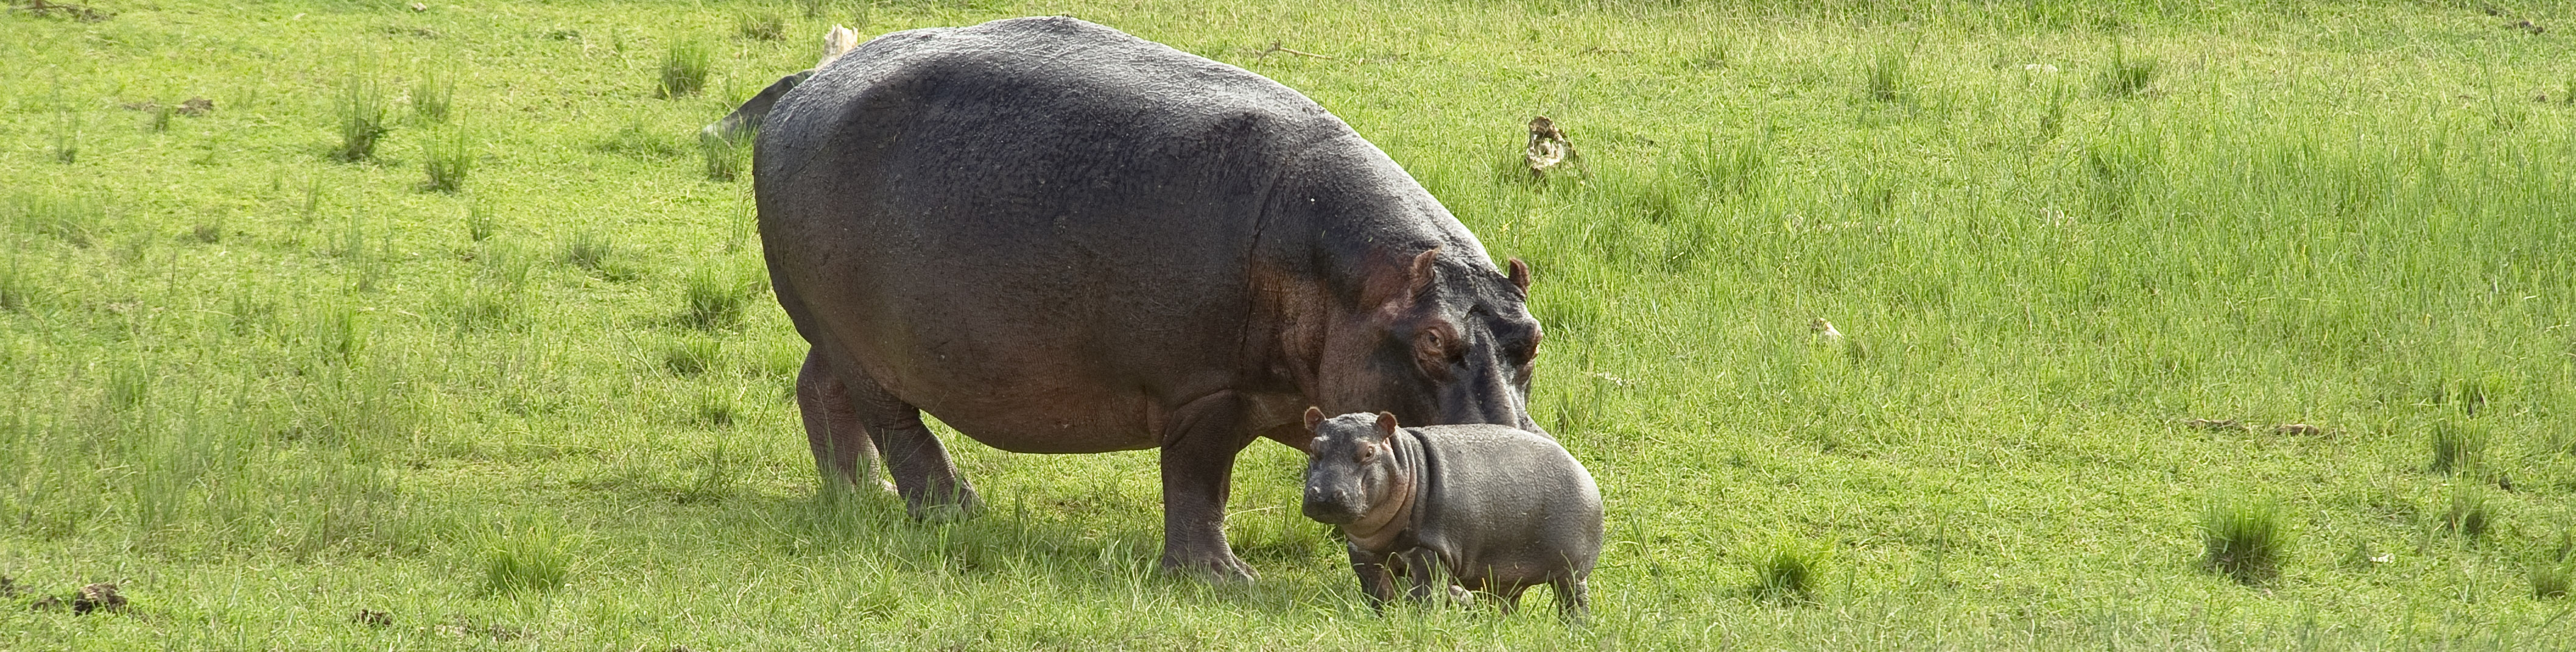 Mama hippo and baby, Queen Elizabeth National Park